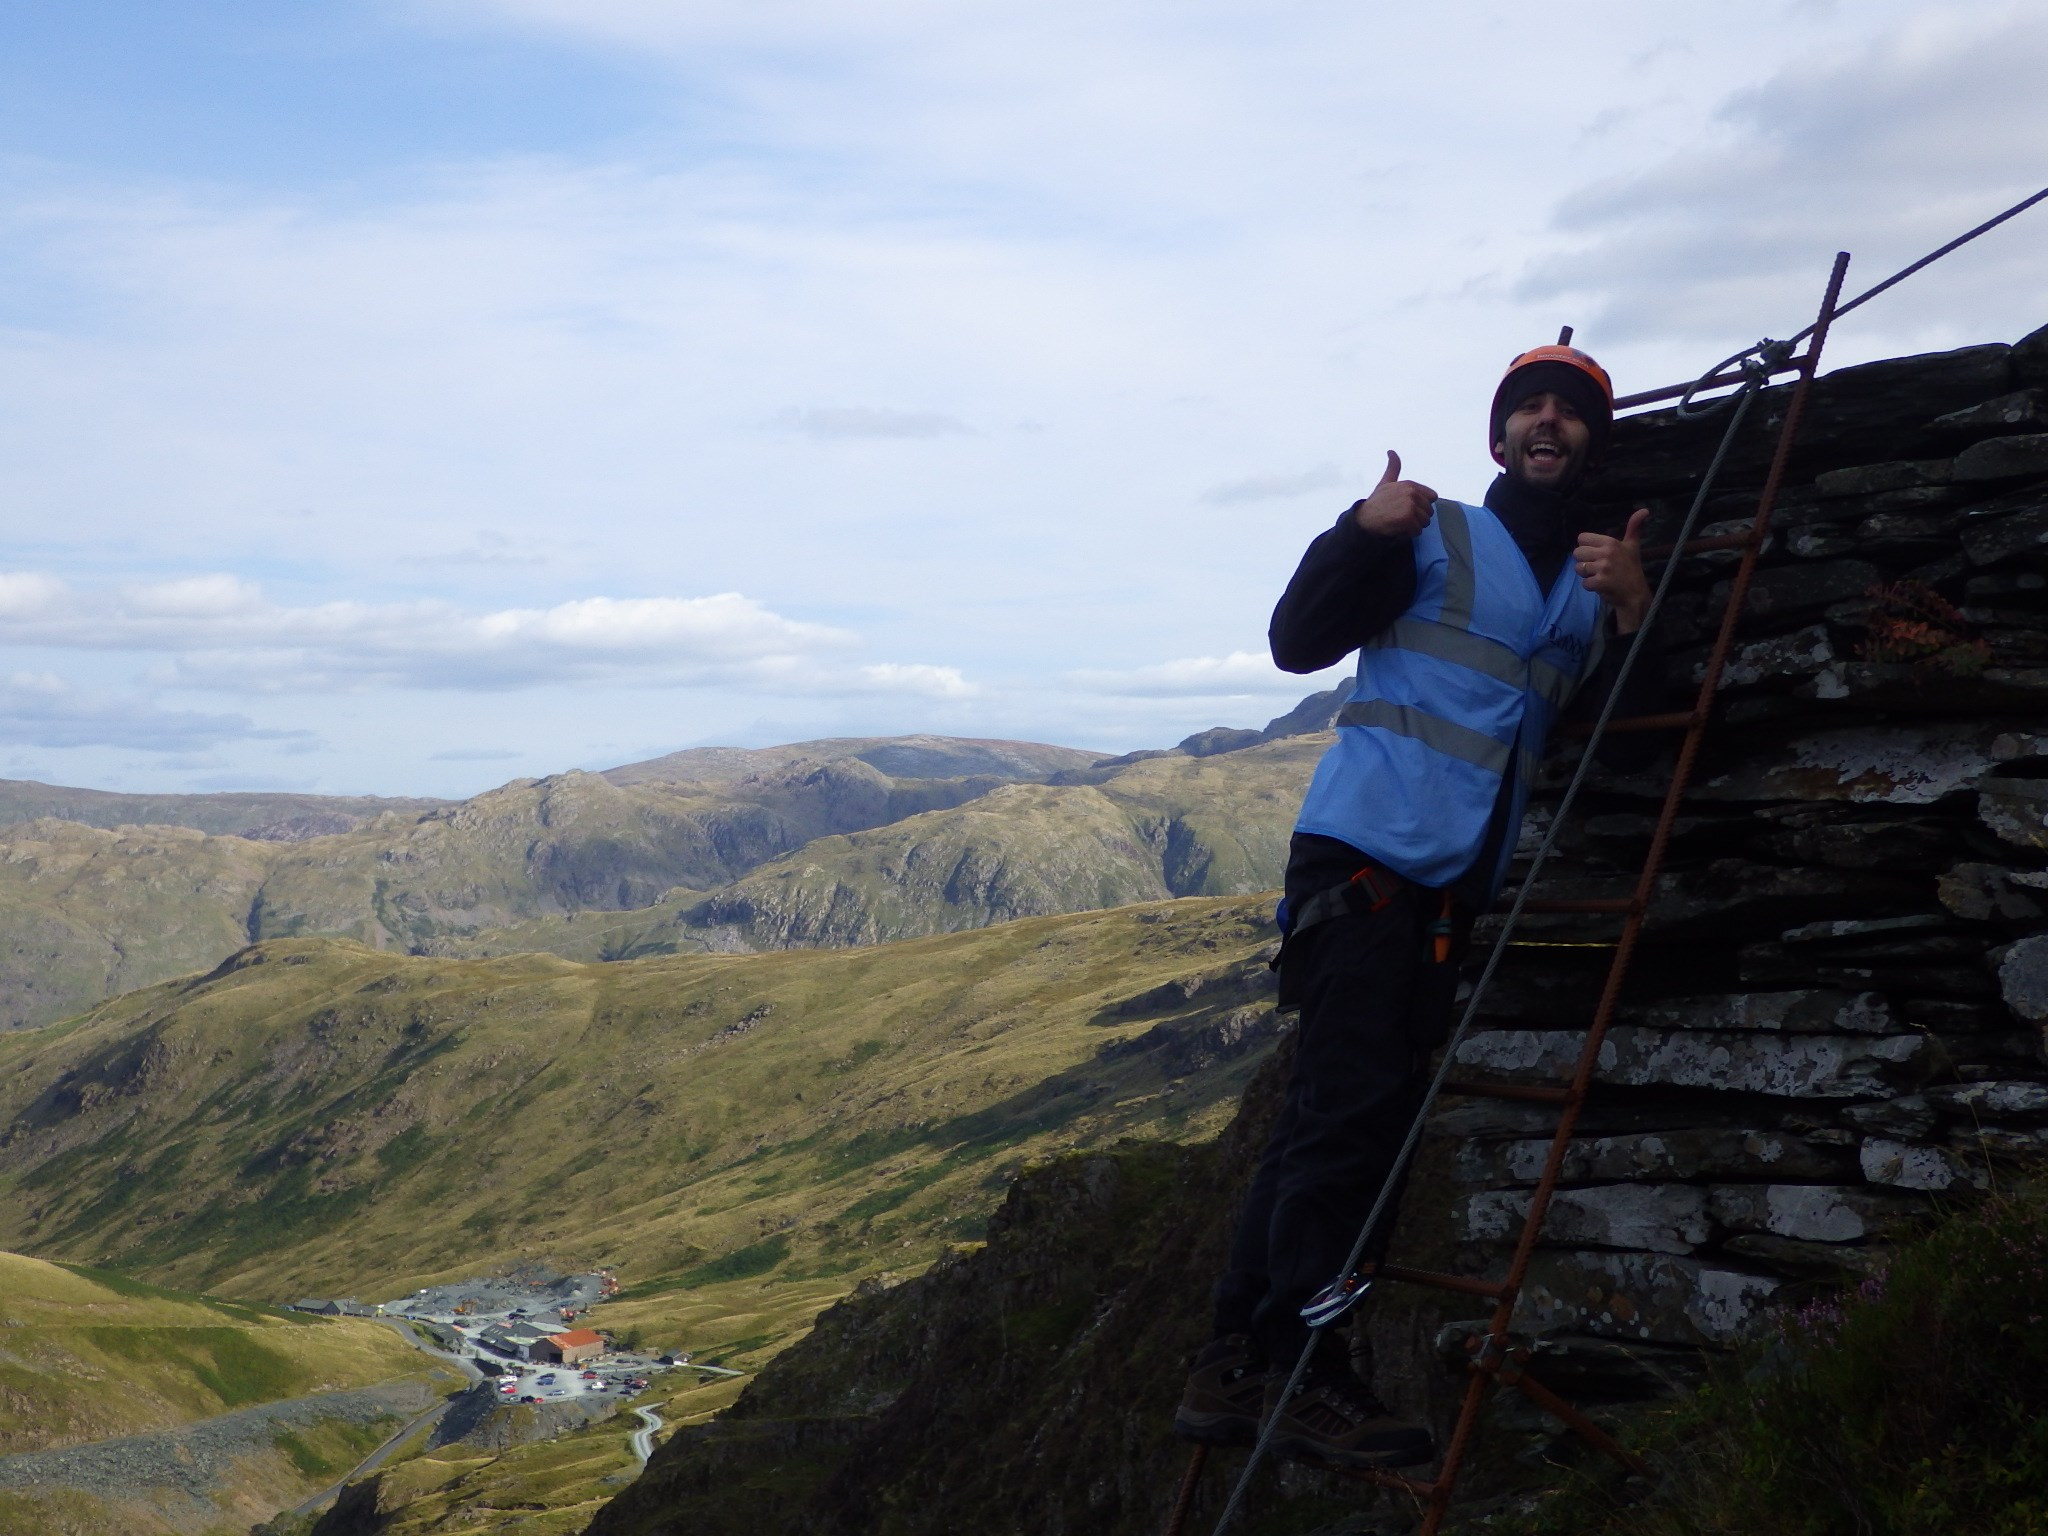 Daddy reaching the top . . horay!